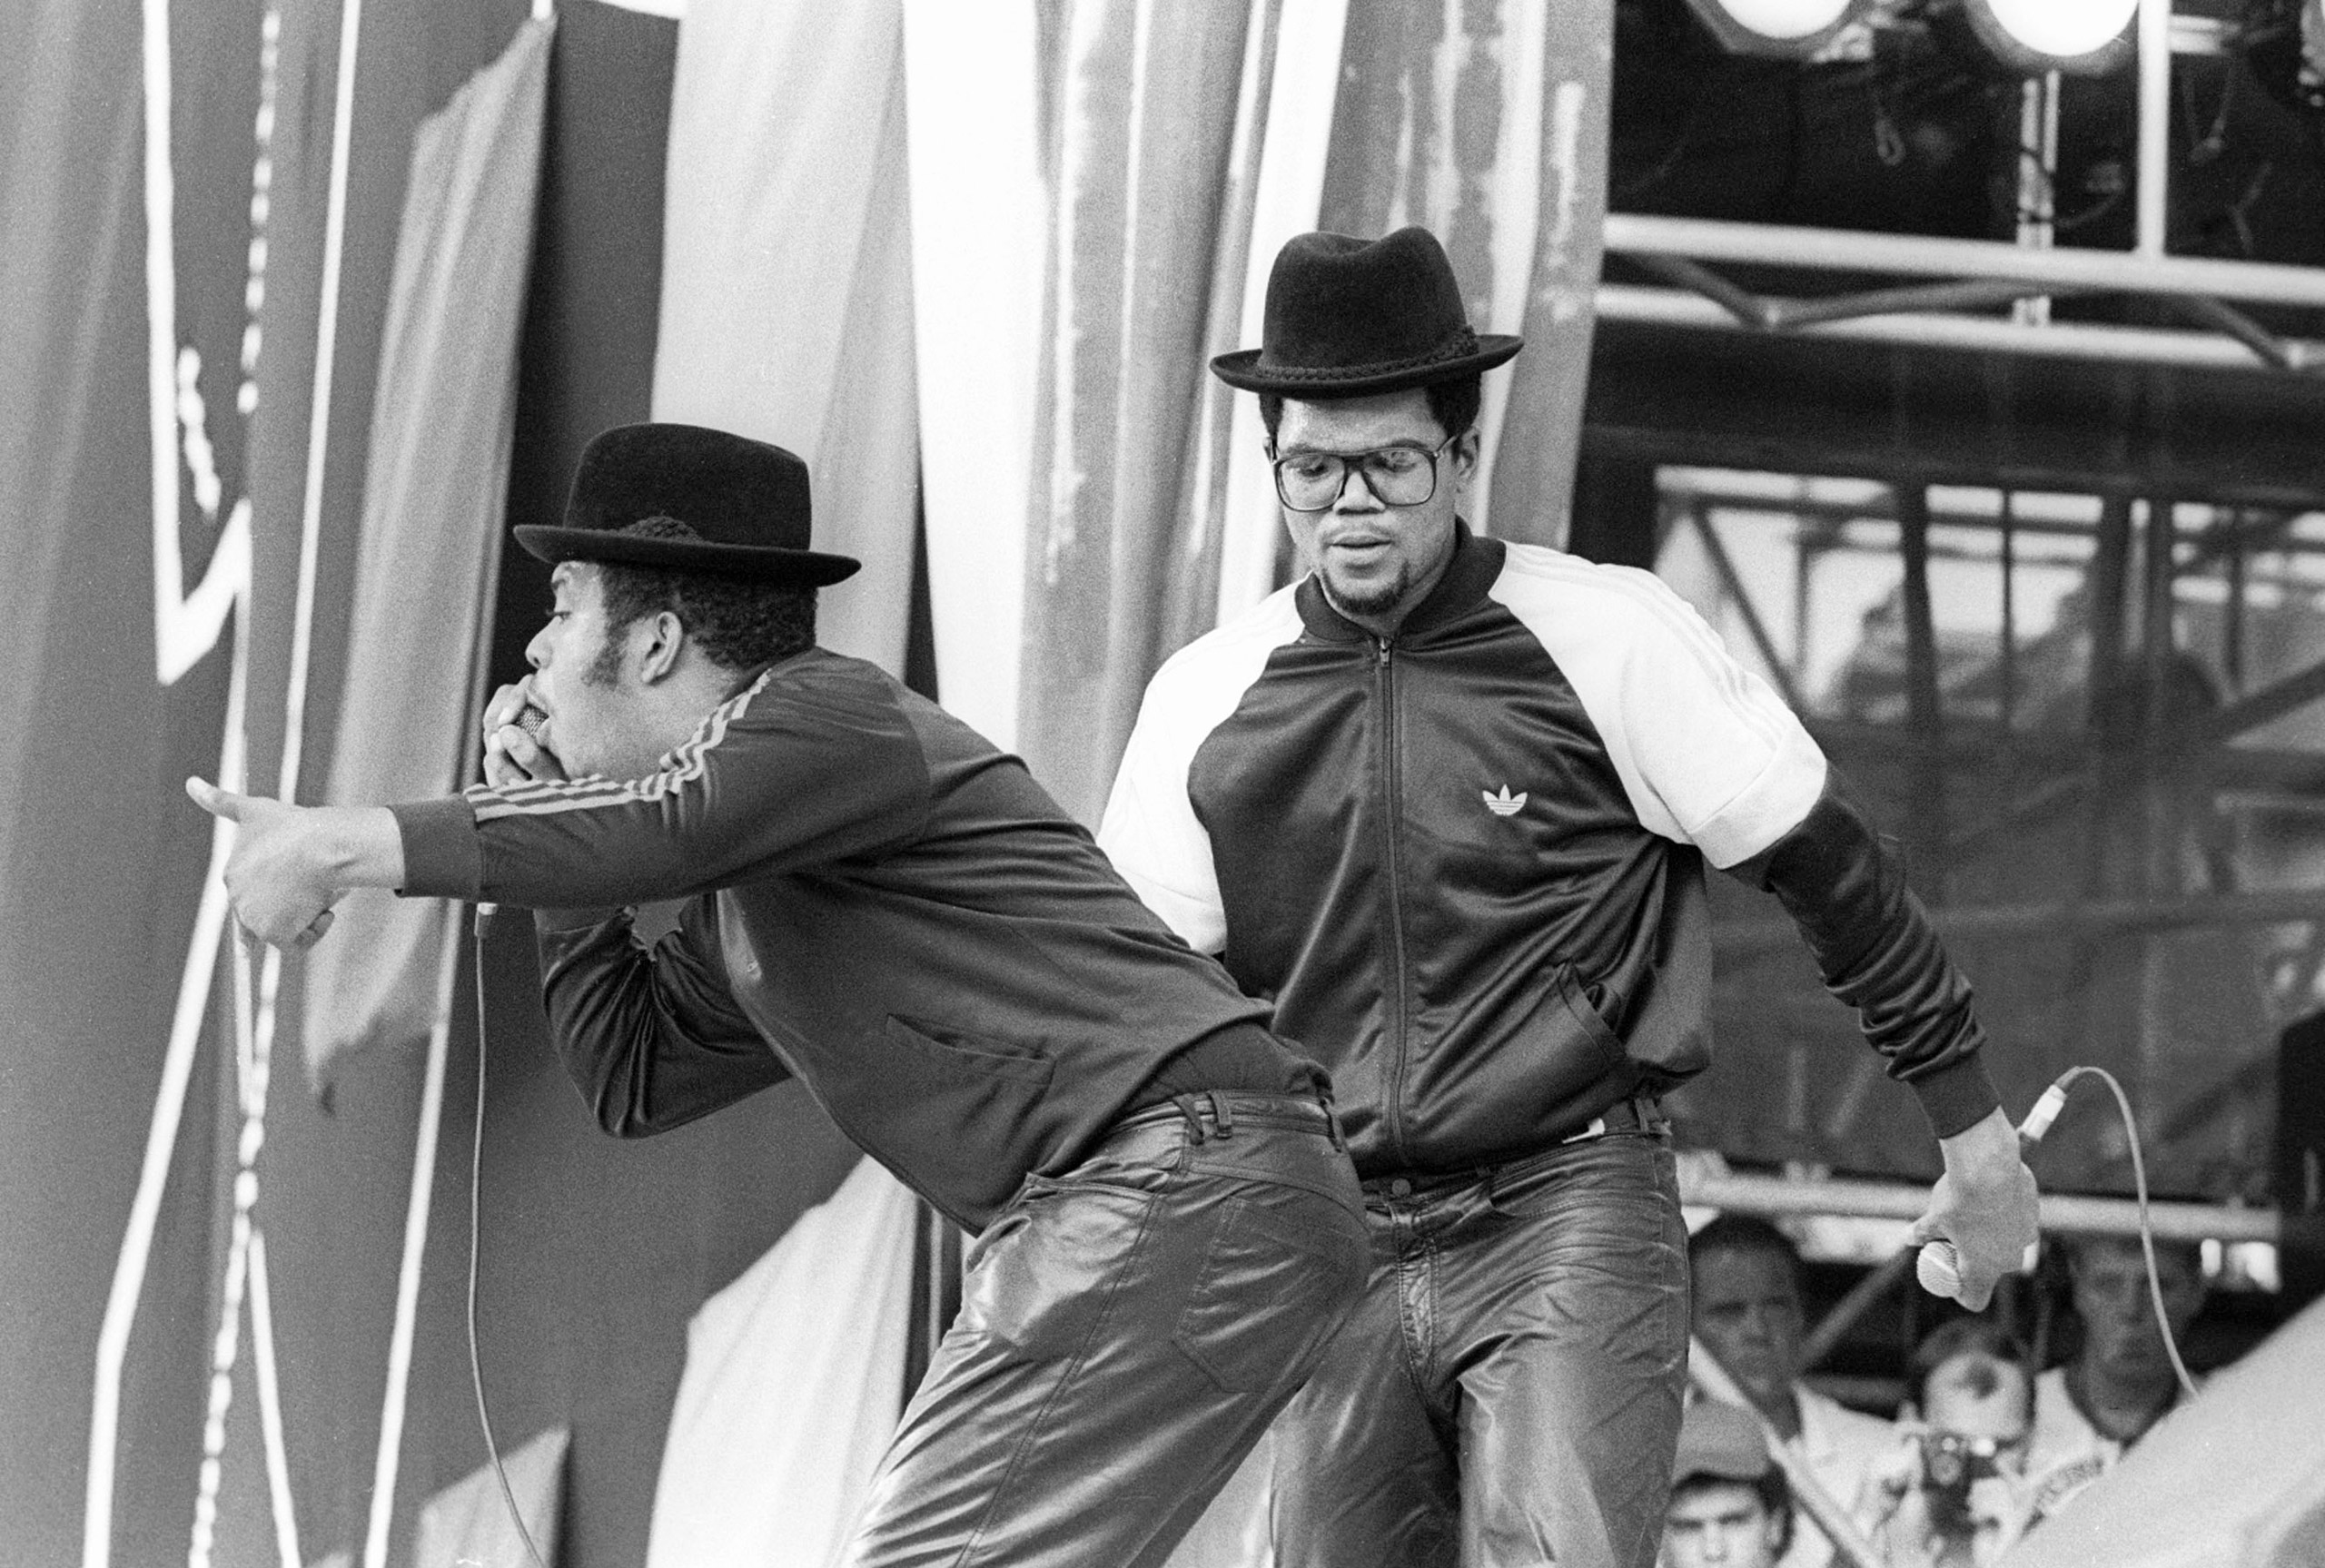 Run DMC performs for a sold out crowd at the Live Aid concert at JFK Stadium in Philadelphia on July 13, 1985.